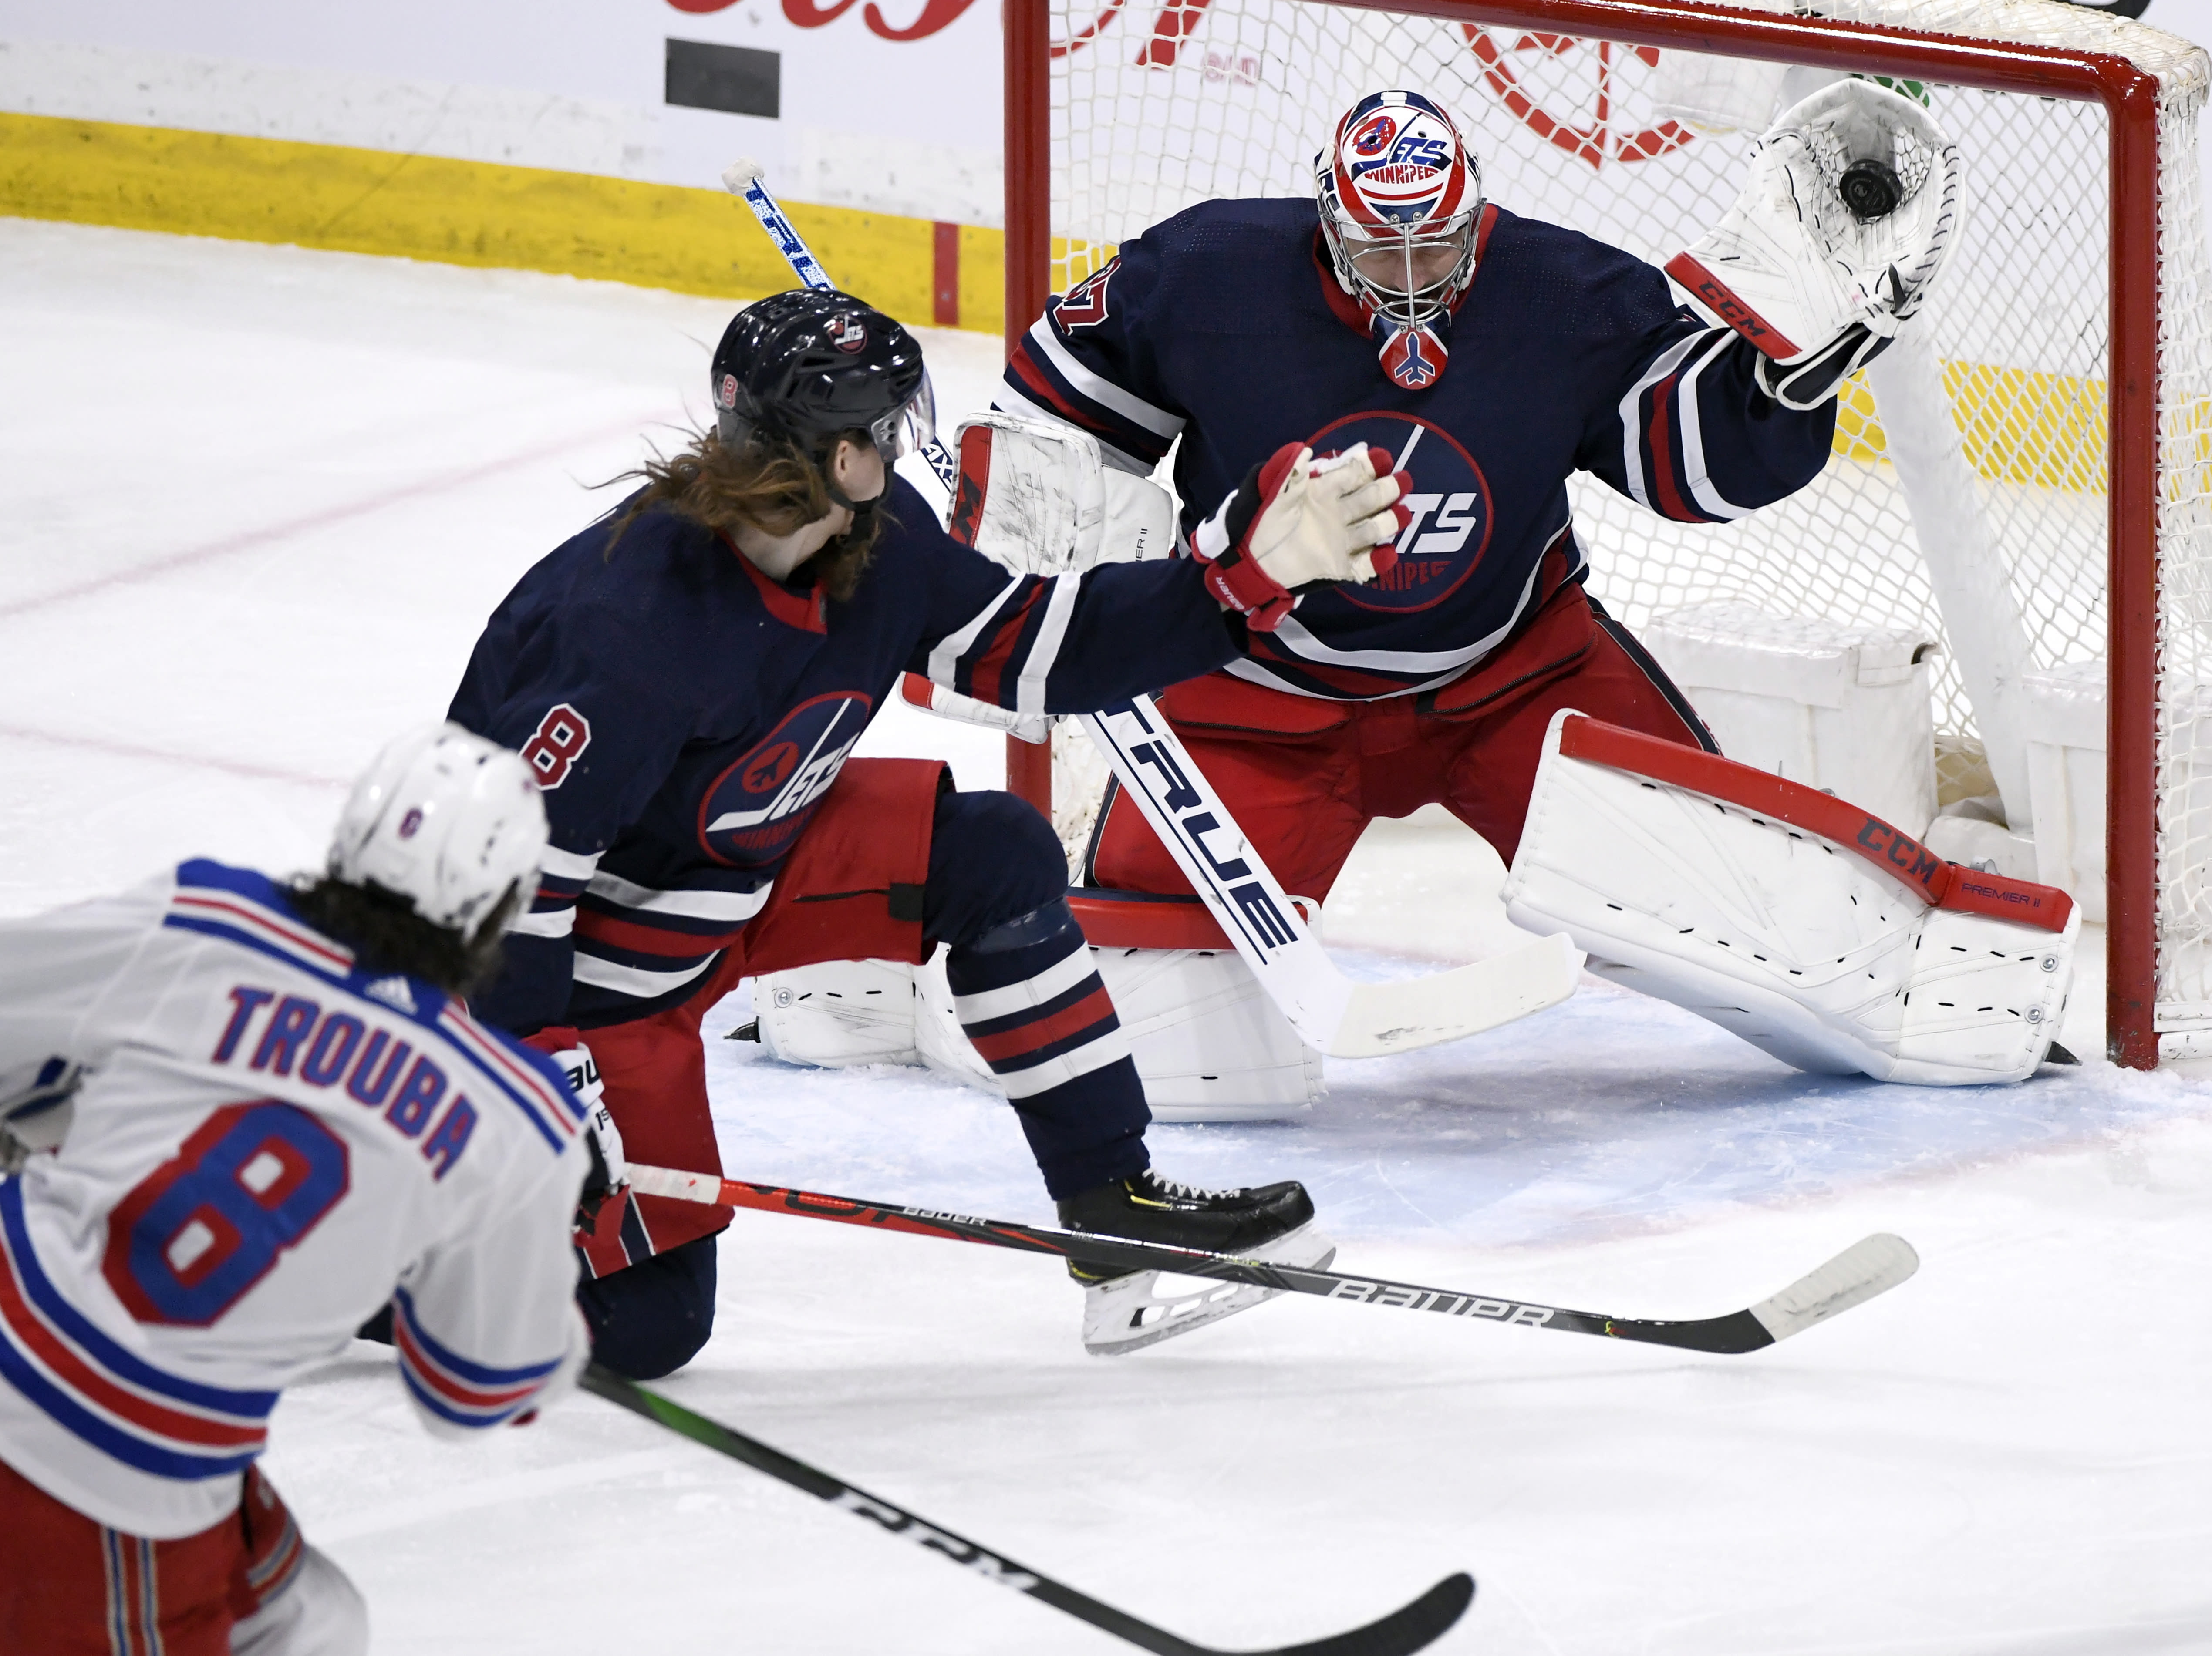 FILE - In this Feb. 11, 2020, file photo, Winnipeg Jets goaltender Connor Hellebuyck (37) makes a save on a shot from New York Rangers' Jacob Trouba (8) during first-period NHL hockey game action in Winnipeg, Manitoba. Hellebuyck has won the Vezina Trophy as top goaltender. (Fred Greenslade/The Canadian Press via AP, File)